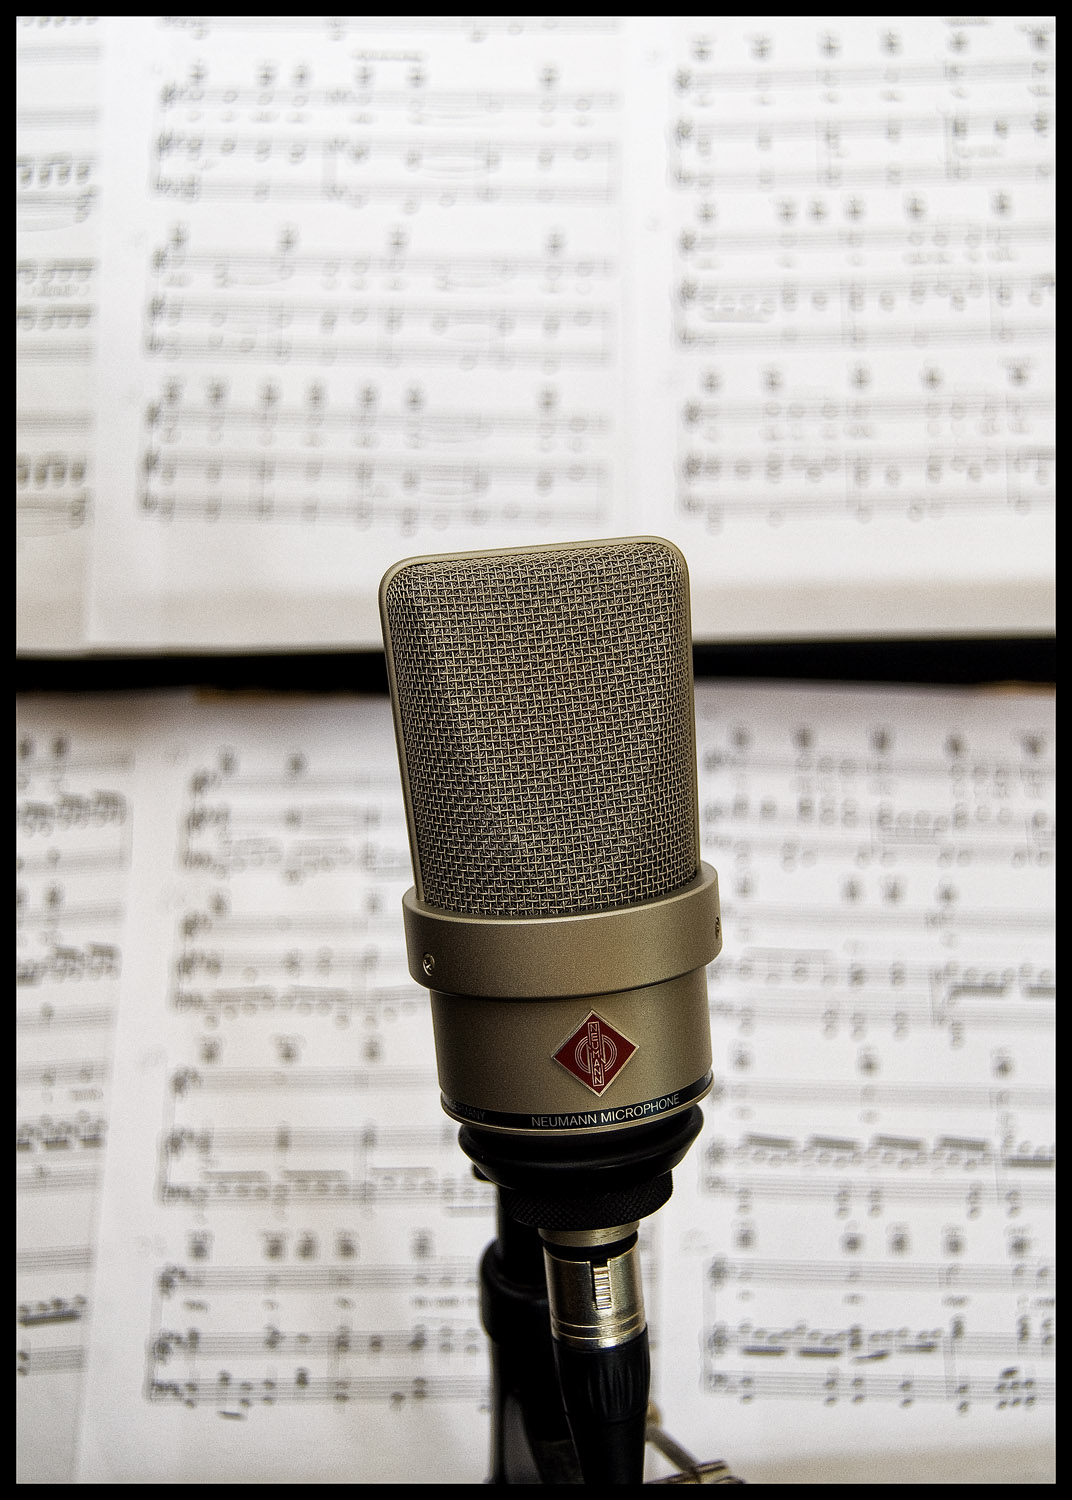 Steve's microphone and music - all ready to go